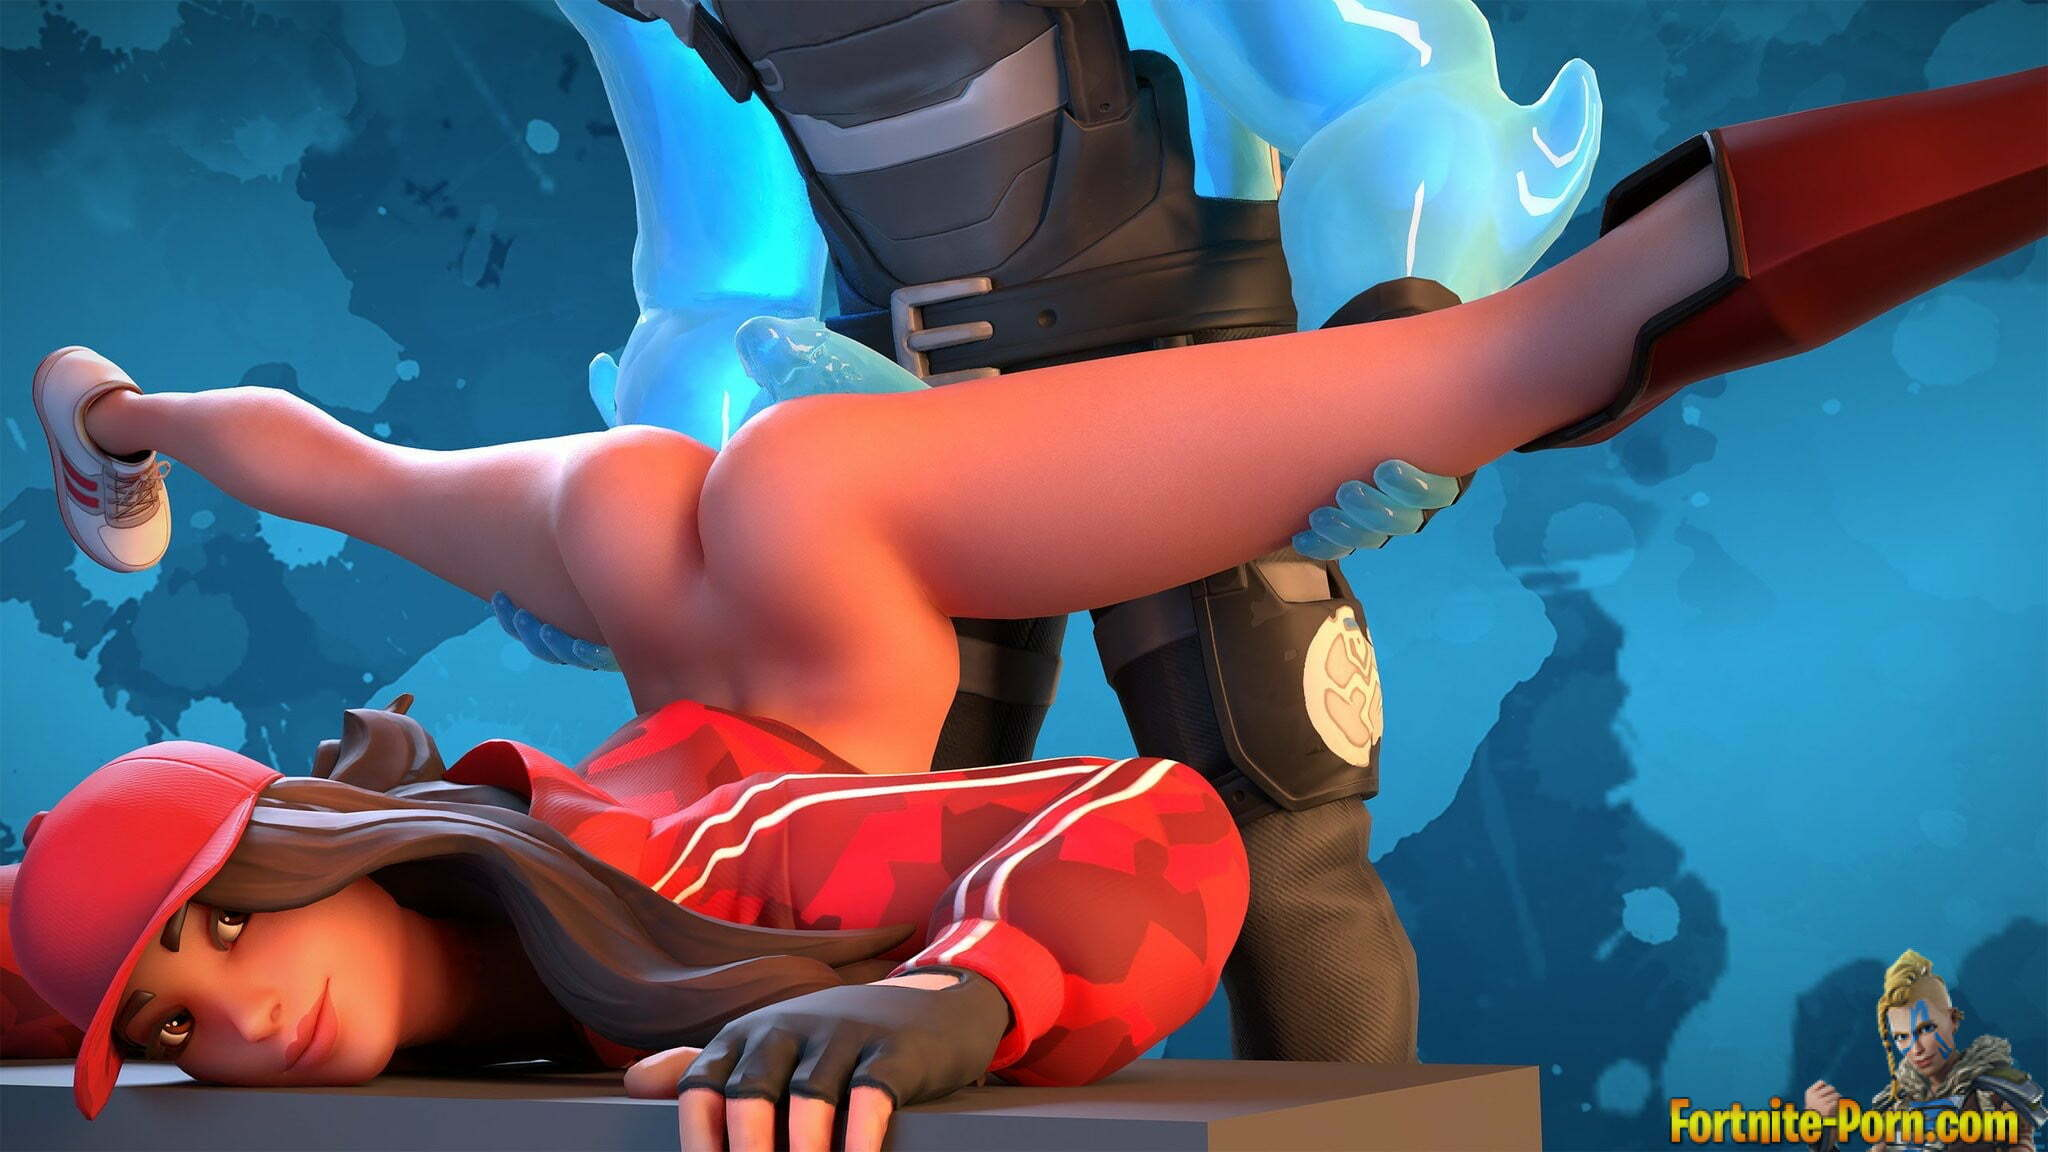 Fortnite Porn Images rippley and ruby • fortnite porn